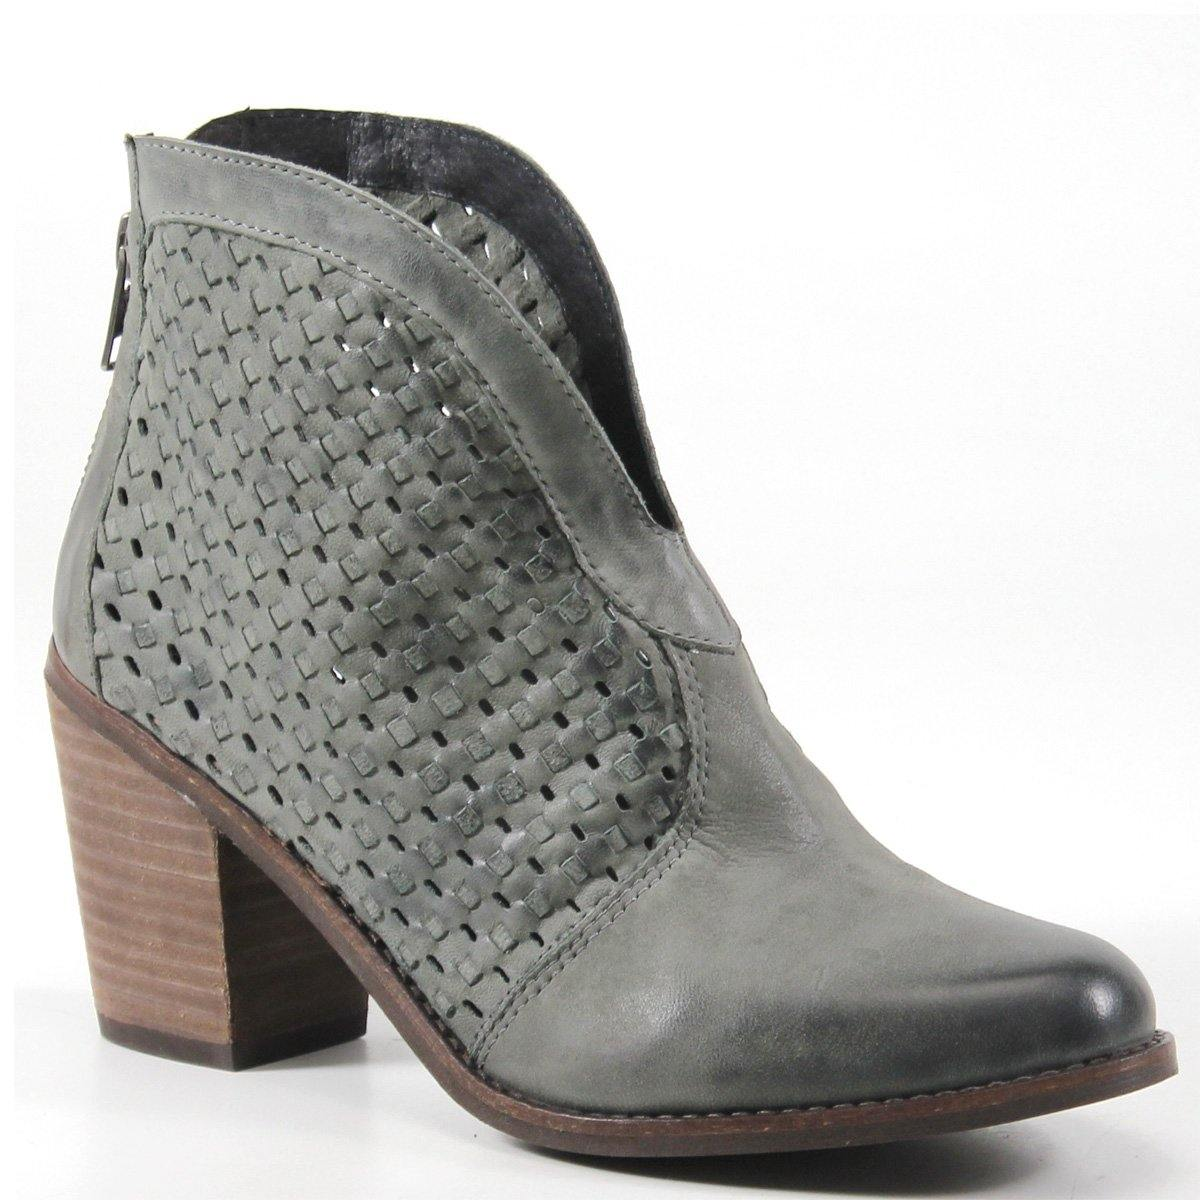 Crafted with a fashionable woven leather upper and u-shaped cutout on the vamp, the Lake Land booties by Diba True will fit right into your wardrobe. With a convenient back zip closure and comfortable padded insole, you can wear these ankle boots with casual or dressier outfits for a classy touch.